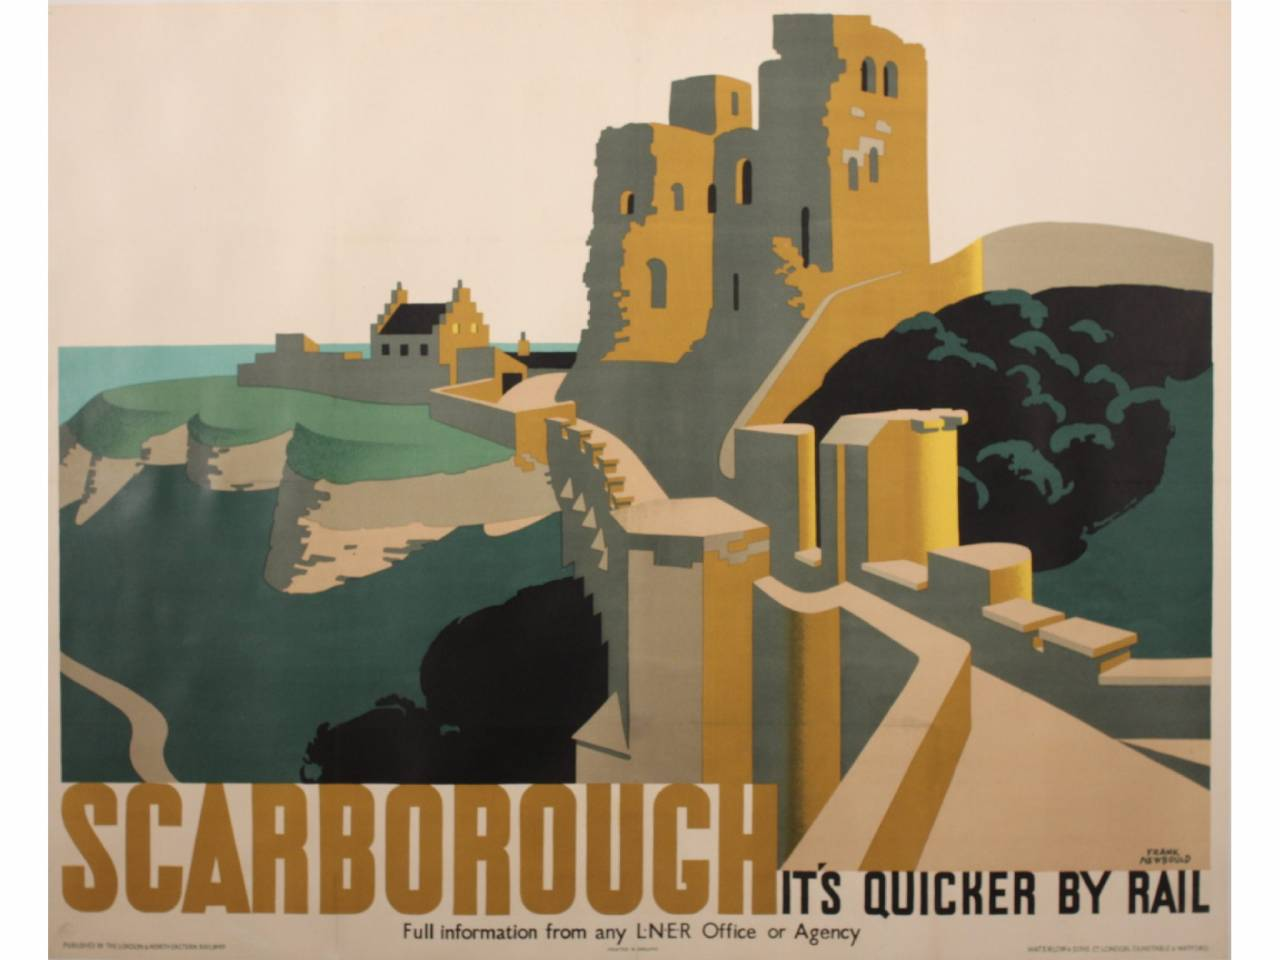 Frank Newbould (1887-1951) Scarborough, original poster printed for LNER by Waterlow c. 1930